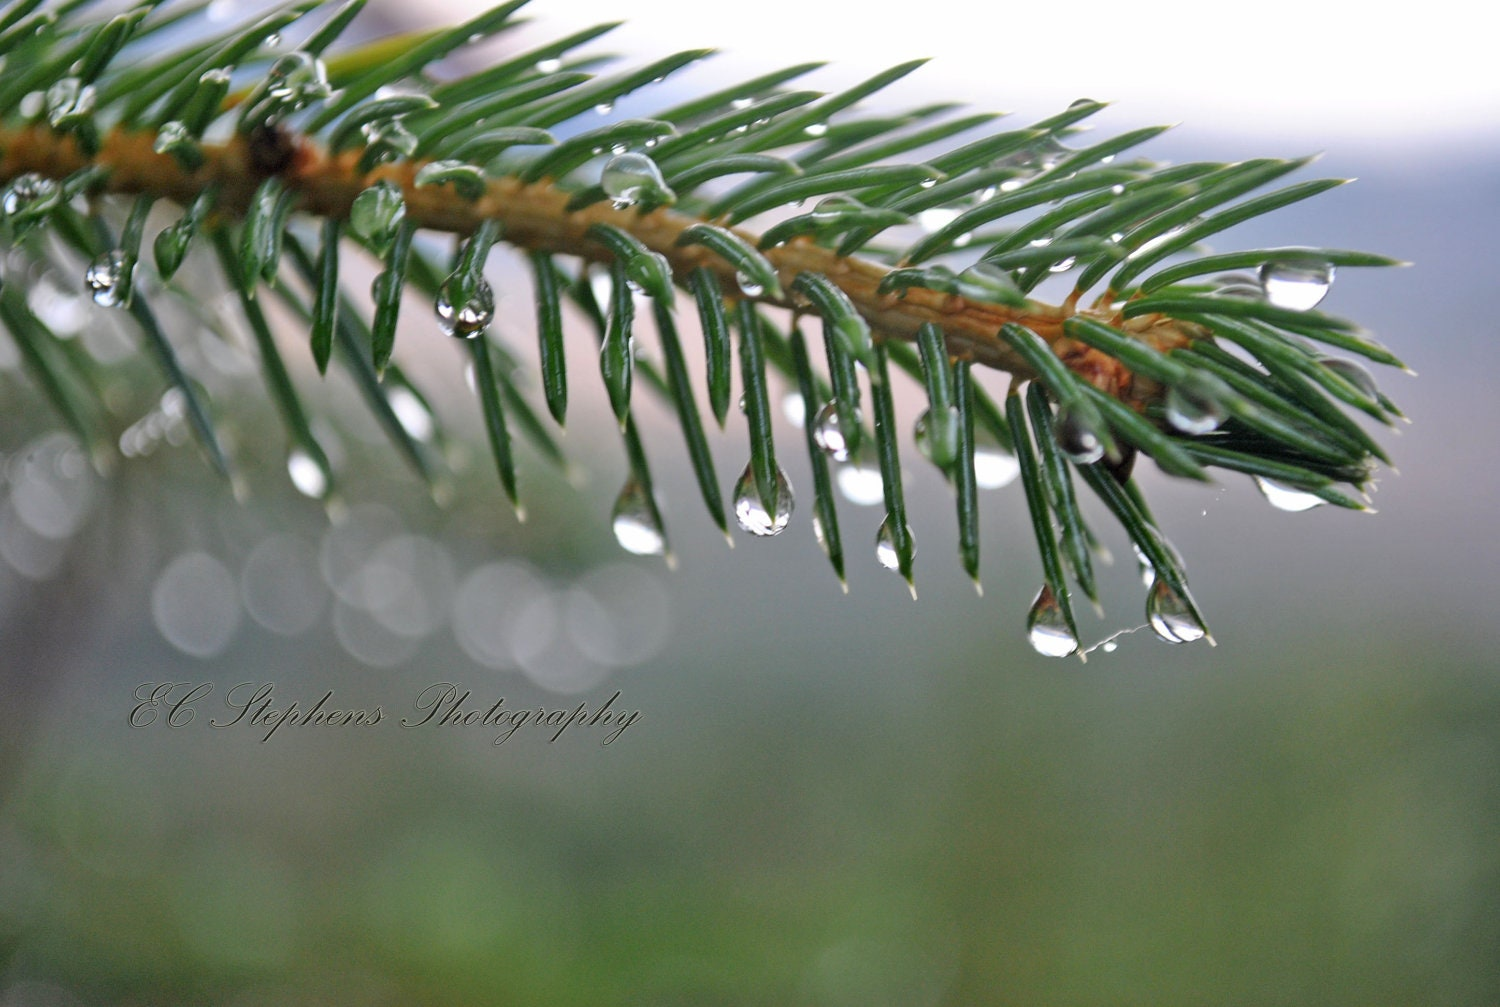 Water drops hang from these pine needles, Water drops, tree, Fine Art, Landscape, Nature Photography, 8x10 Photograph - ECStephensPhotos